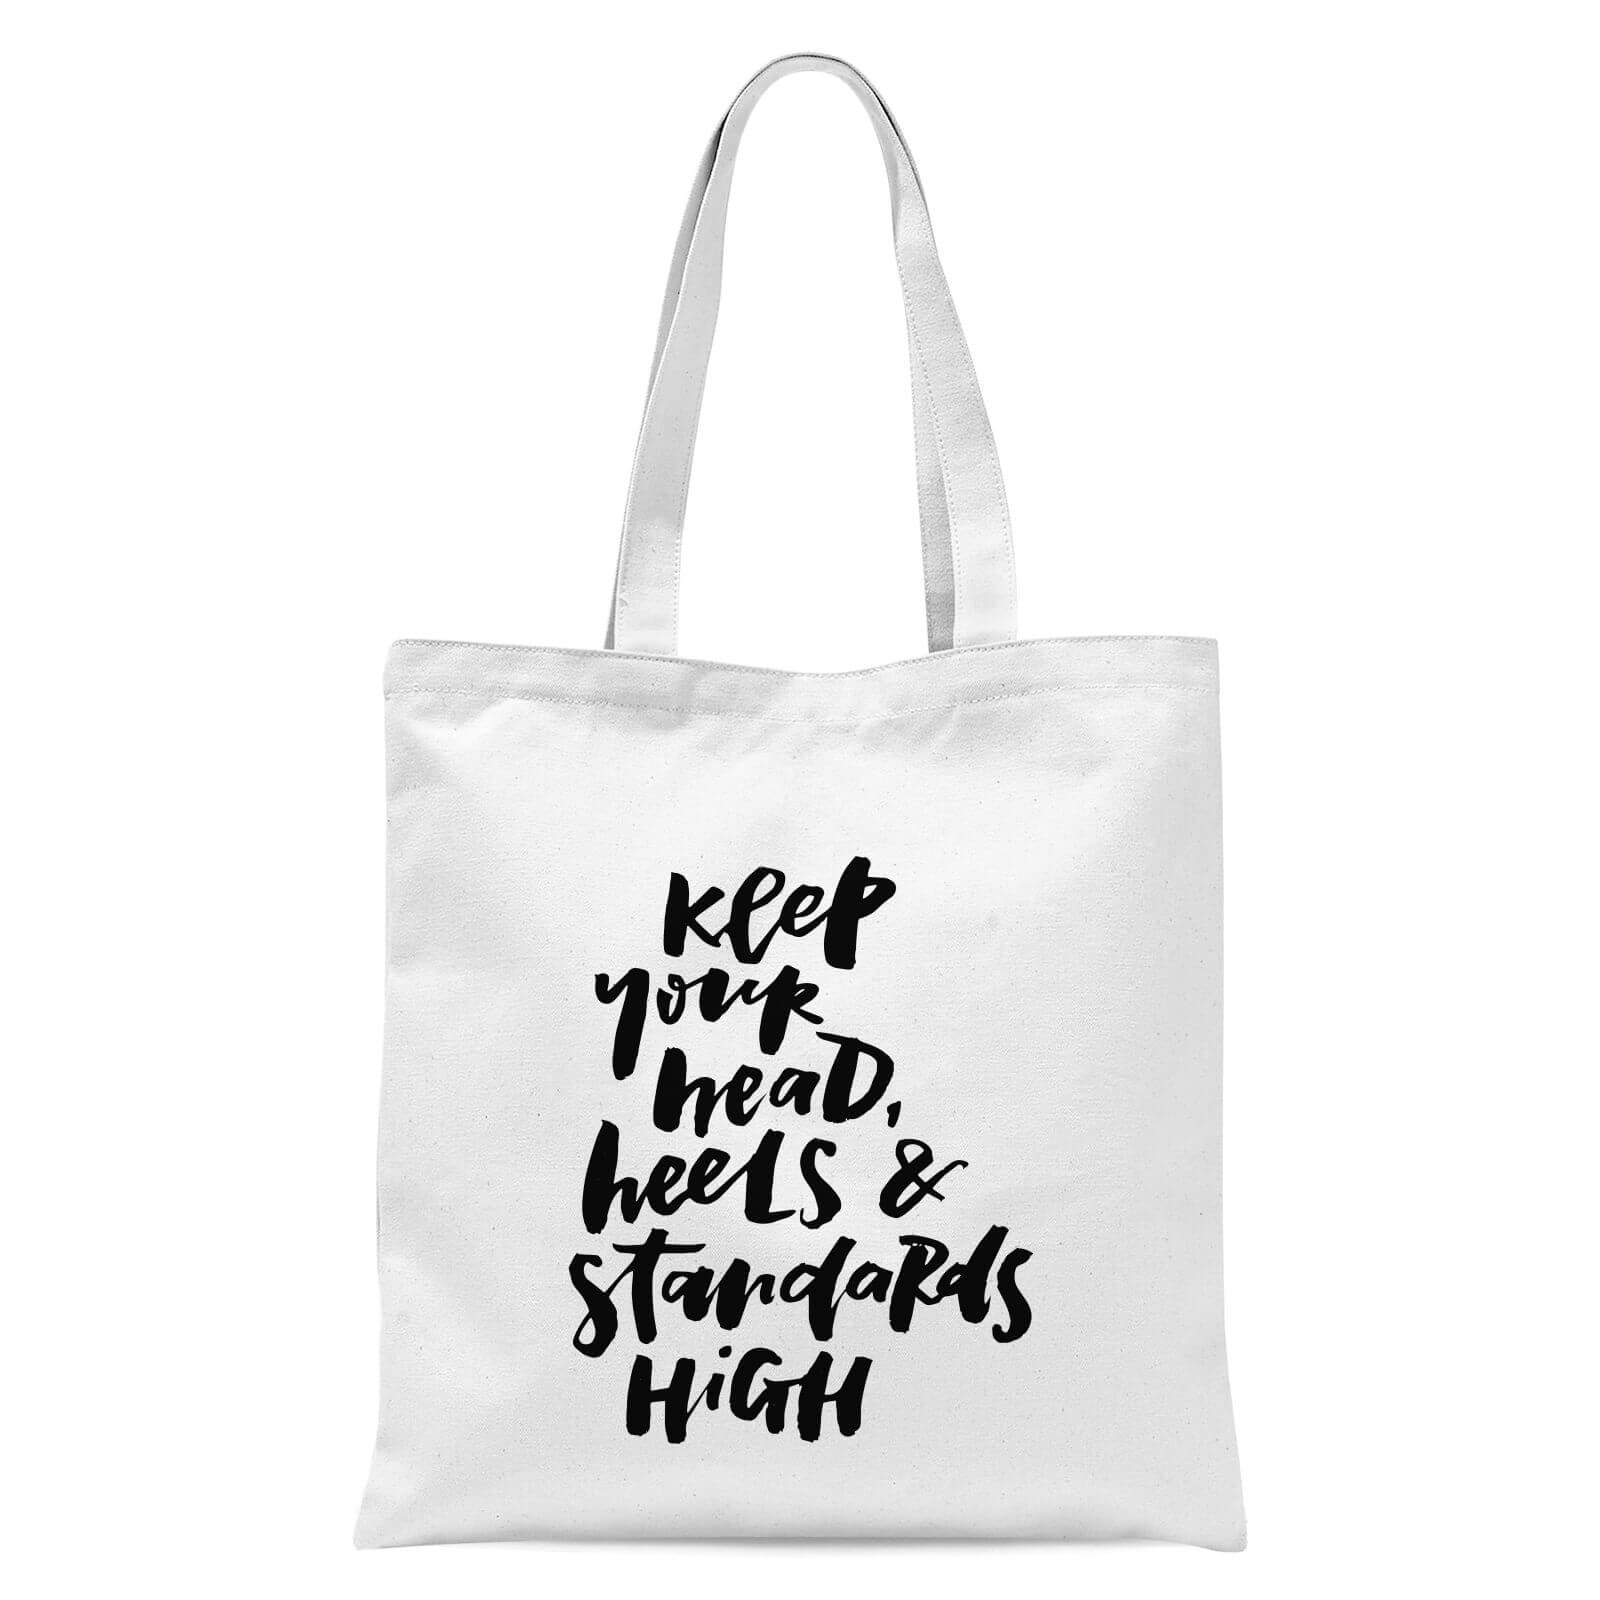 5bb228f195a PlanetA444 Keep Your Head, Heels and Standards High Tote Bag - White